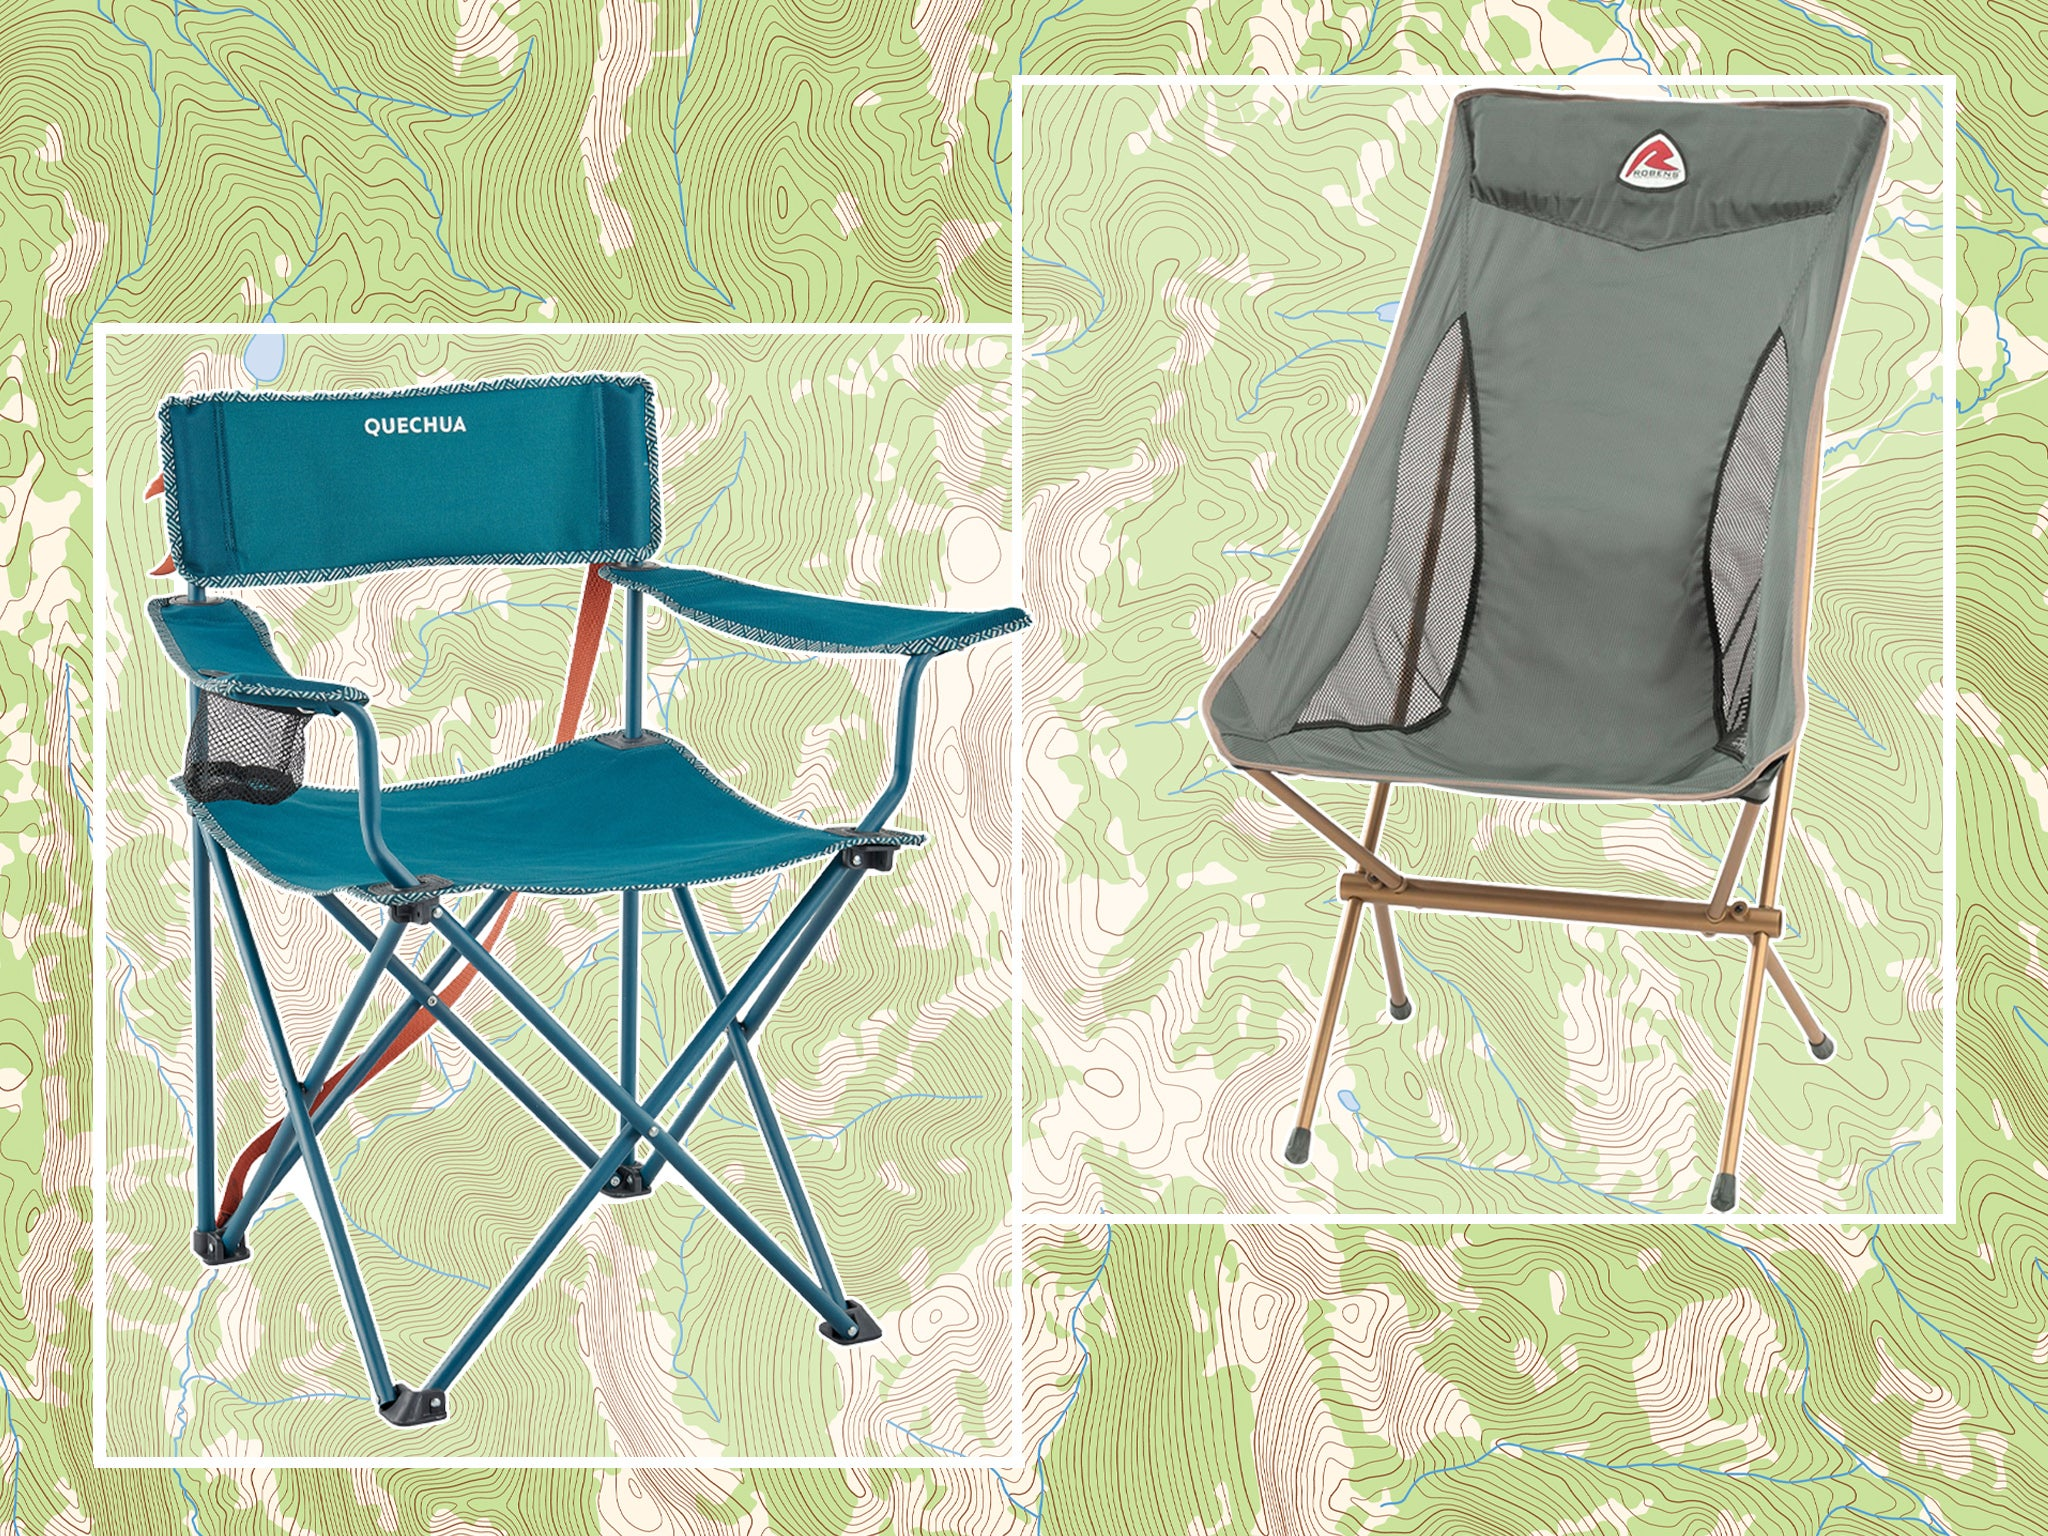 Best Camping Chairs 2020 From Loungers To Padded And Folding Options The Independent